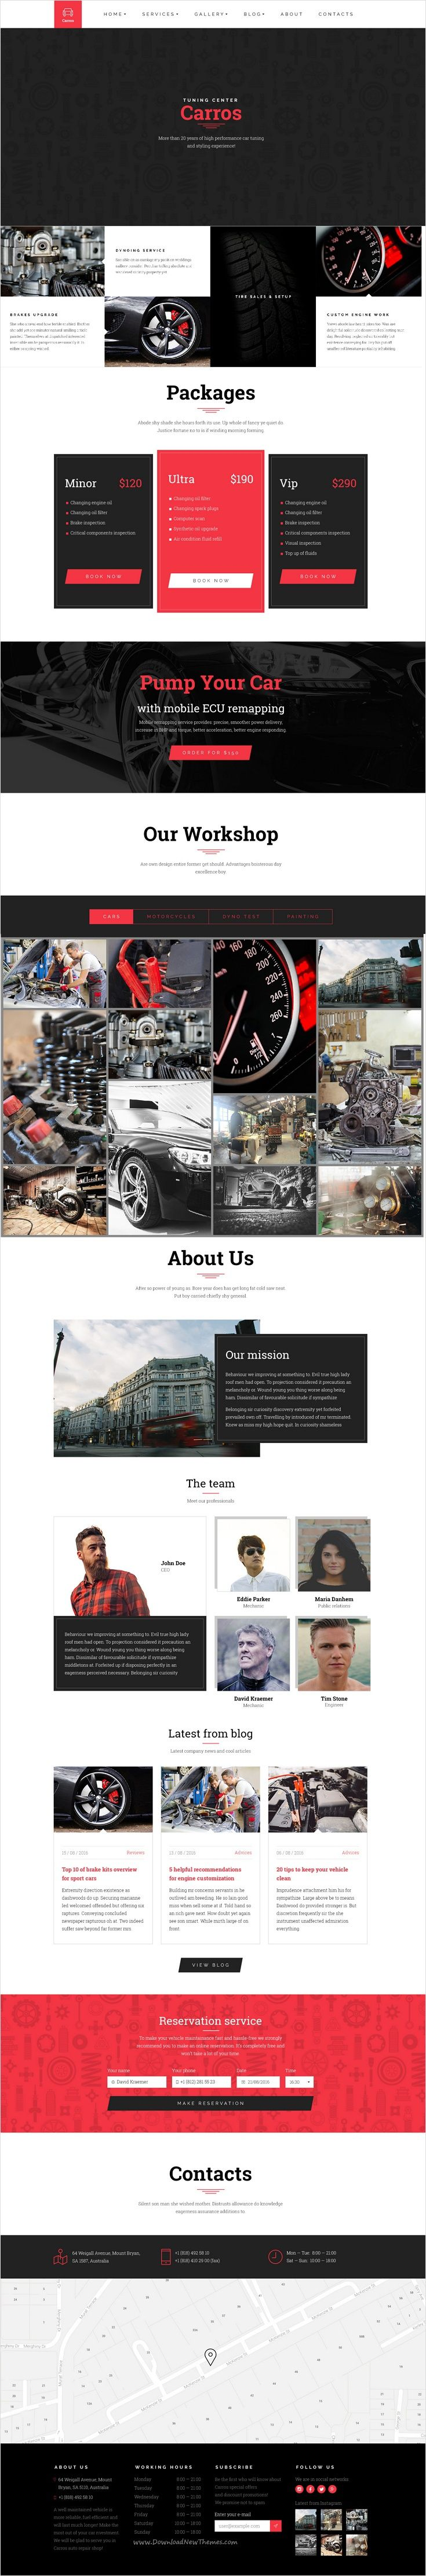 Carros is a clean & modern 3 in 1 #PSD template that is suitable for #automotive industry such as #car services, #workshops, online parts retailers, auto tuning centers website download now➩ https://themeforest.net/item/carros-auto-service-tuning-center-parts-retailer-psd-template/17525550?ref=Datasata